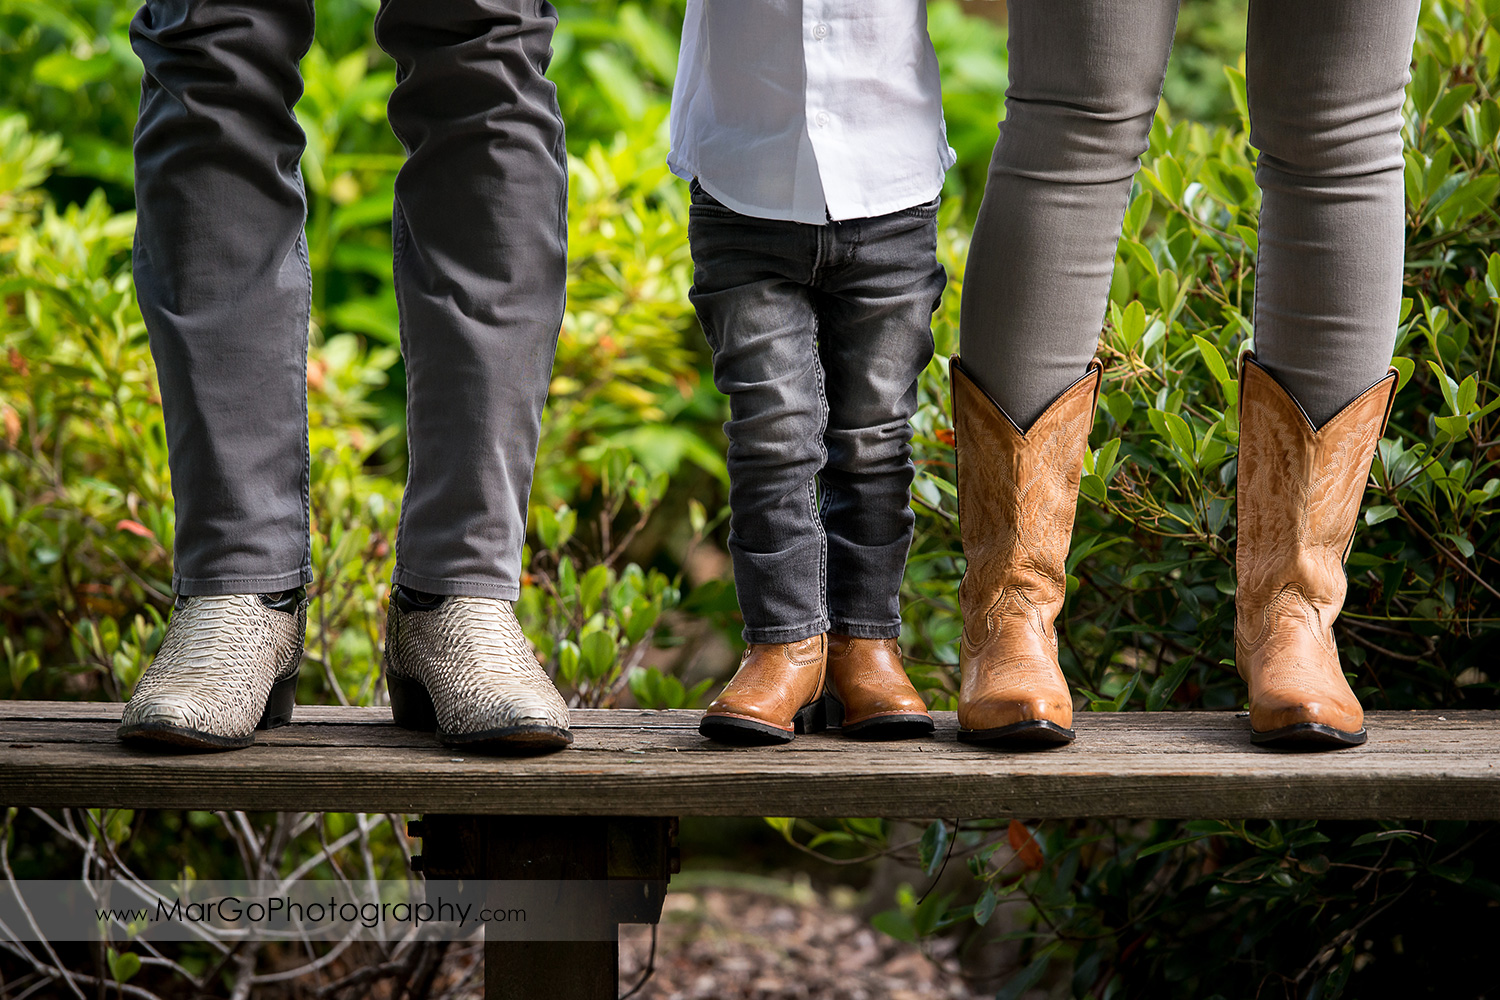 cowboy shoes of family of 3 wearing gray jeans in Shinn Historical Park and Arboretum in Fremont